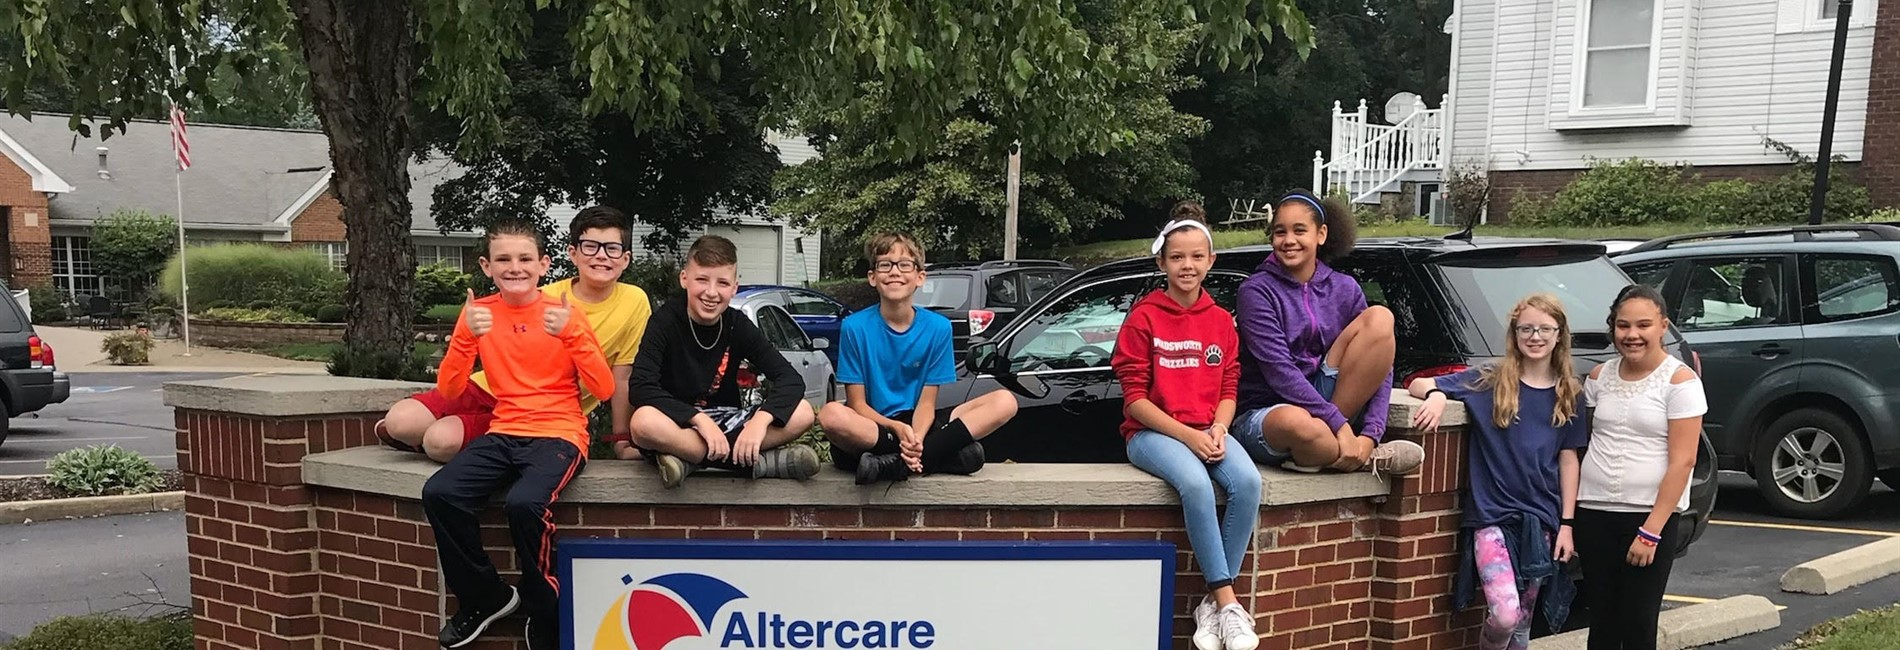 Visiting Altercare